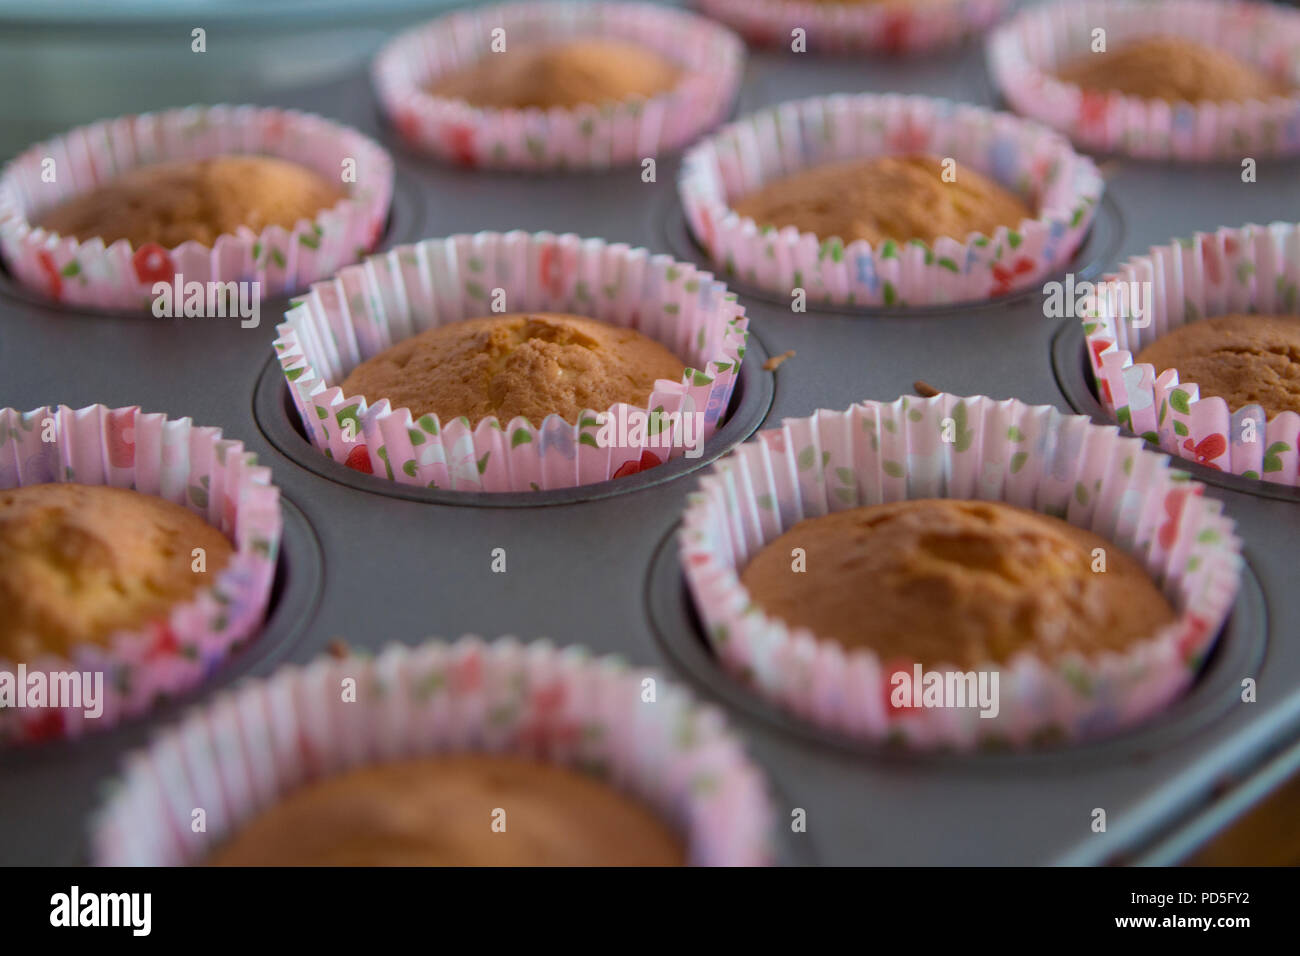 Mums homemade carrot cupcakes with cream cheese filling. - Stock Image